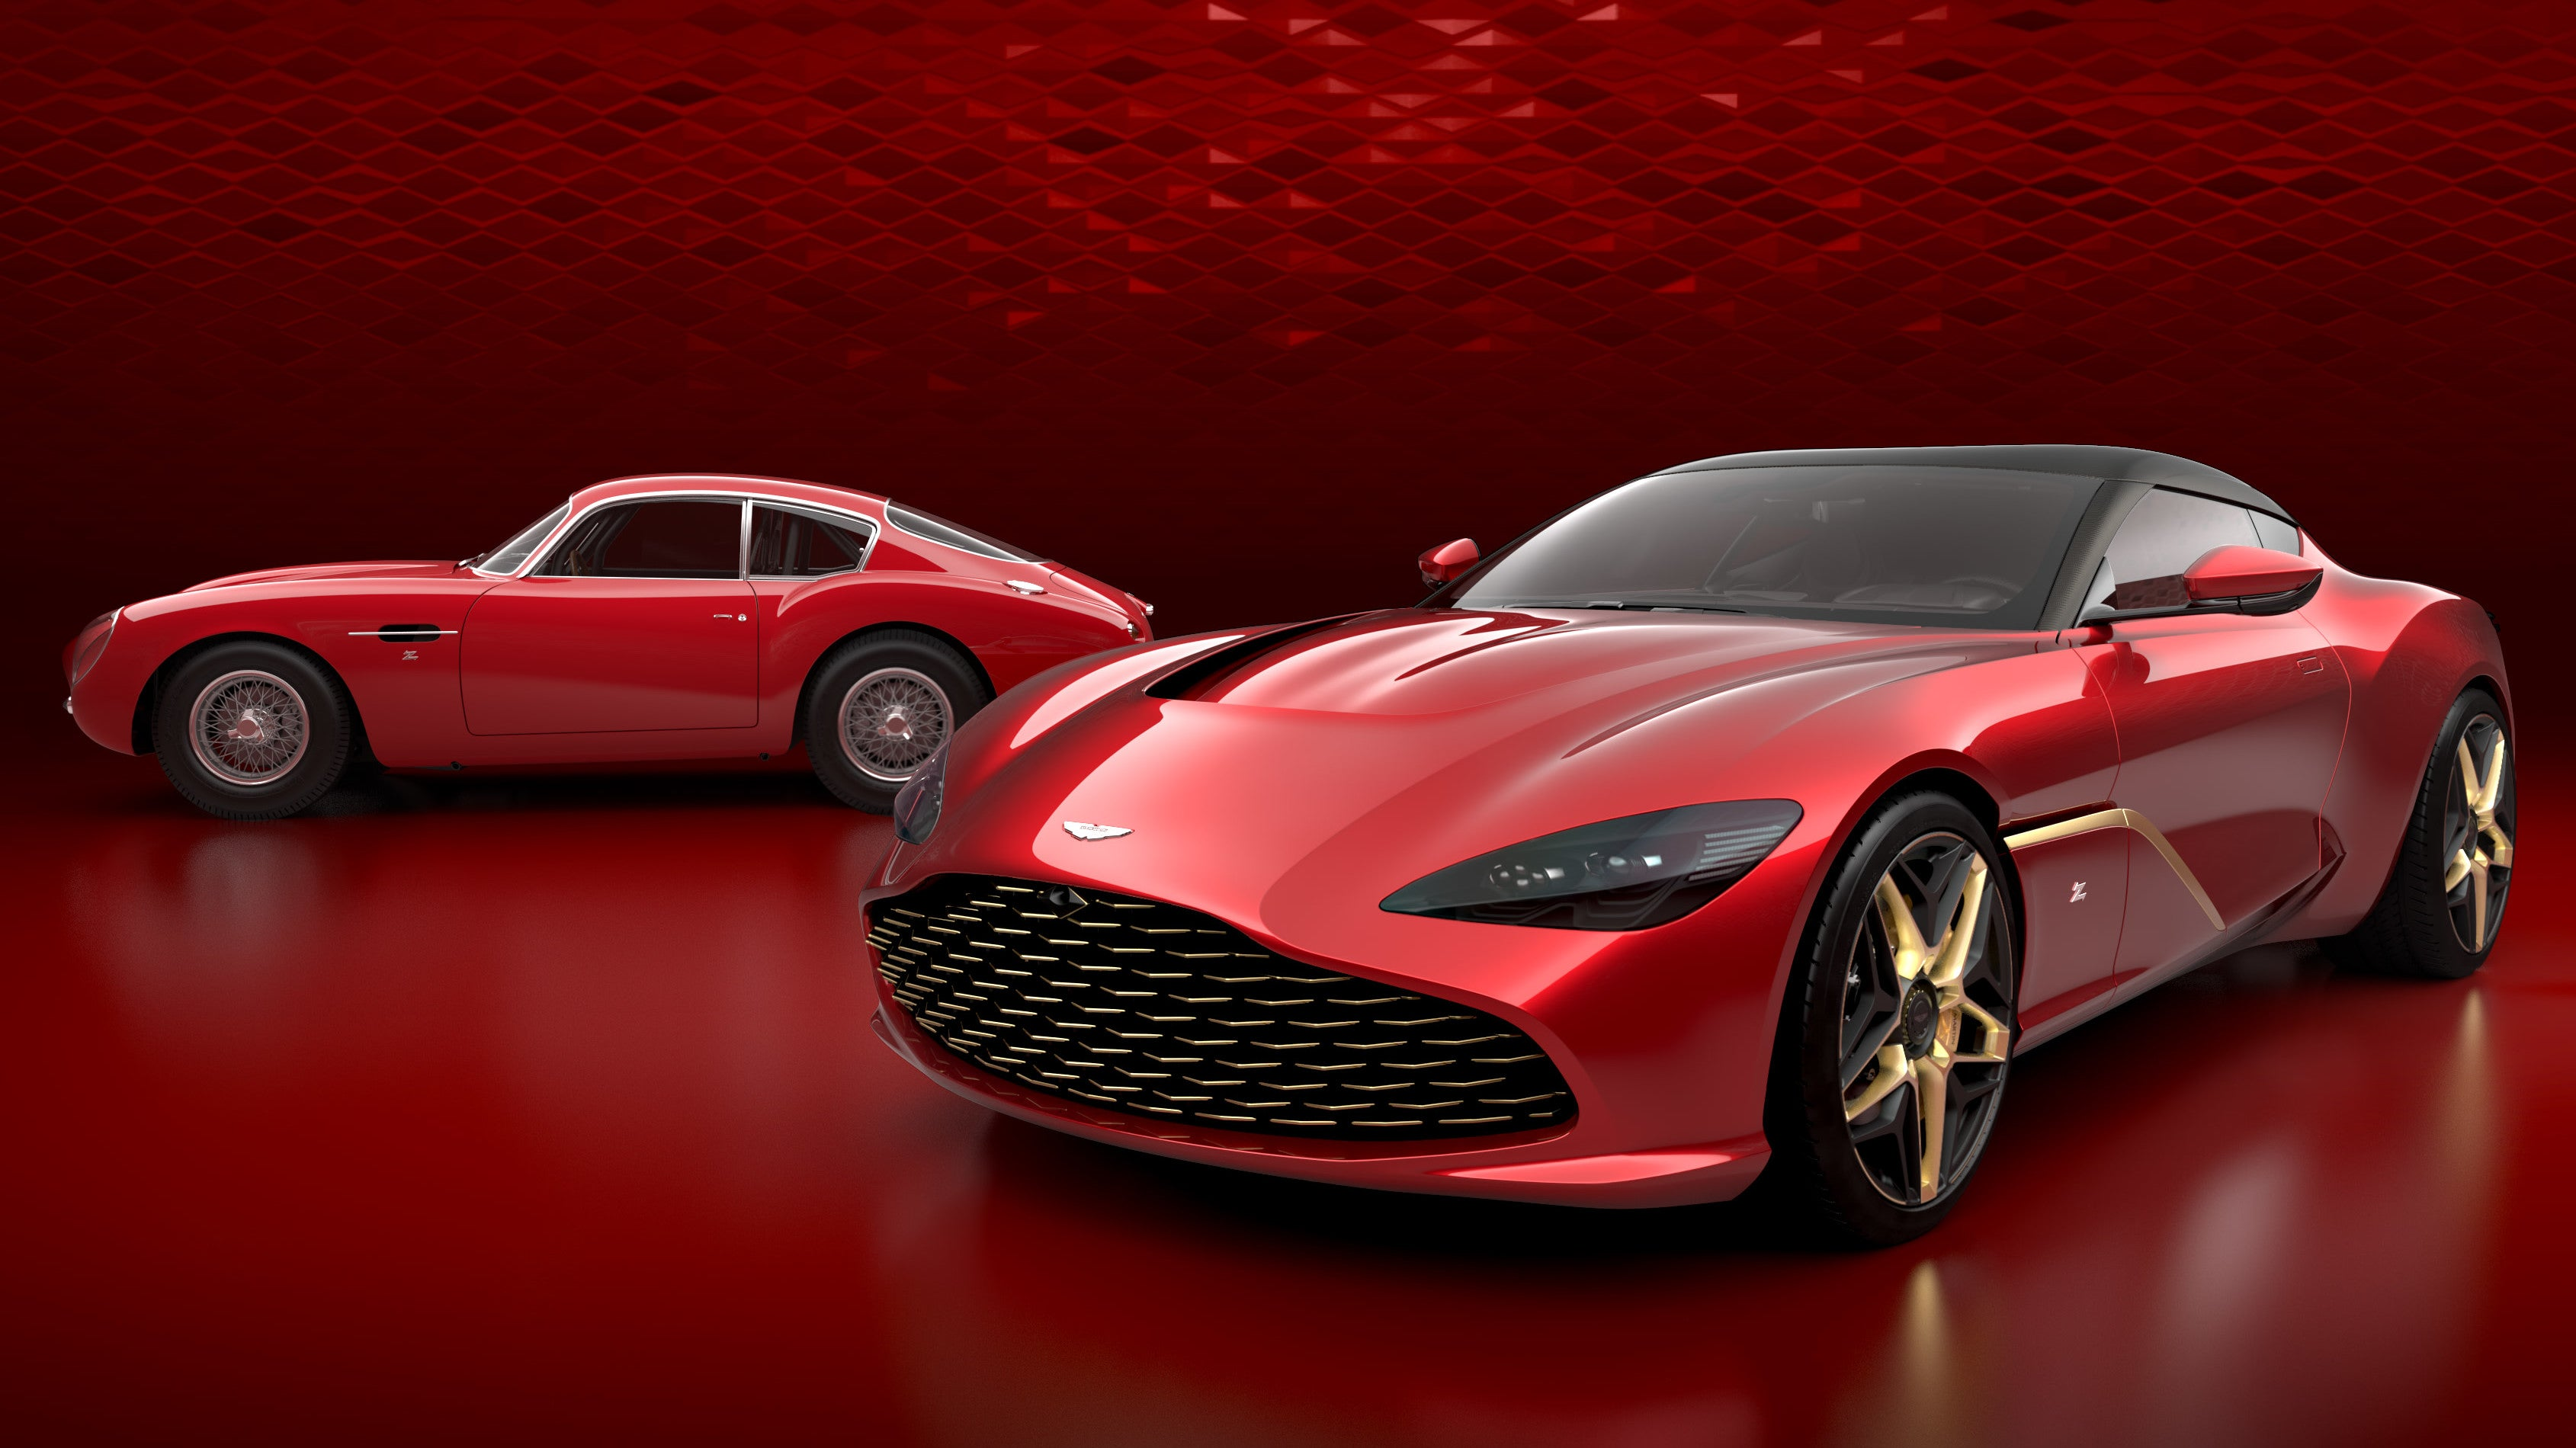 This $11 Million Aston Martin Has No Rear Window Because Glass Is For Poors